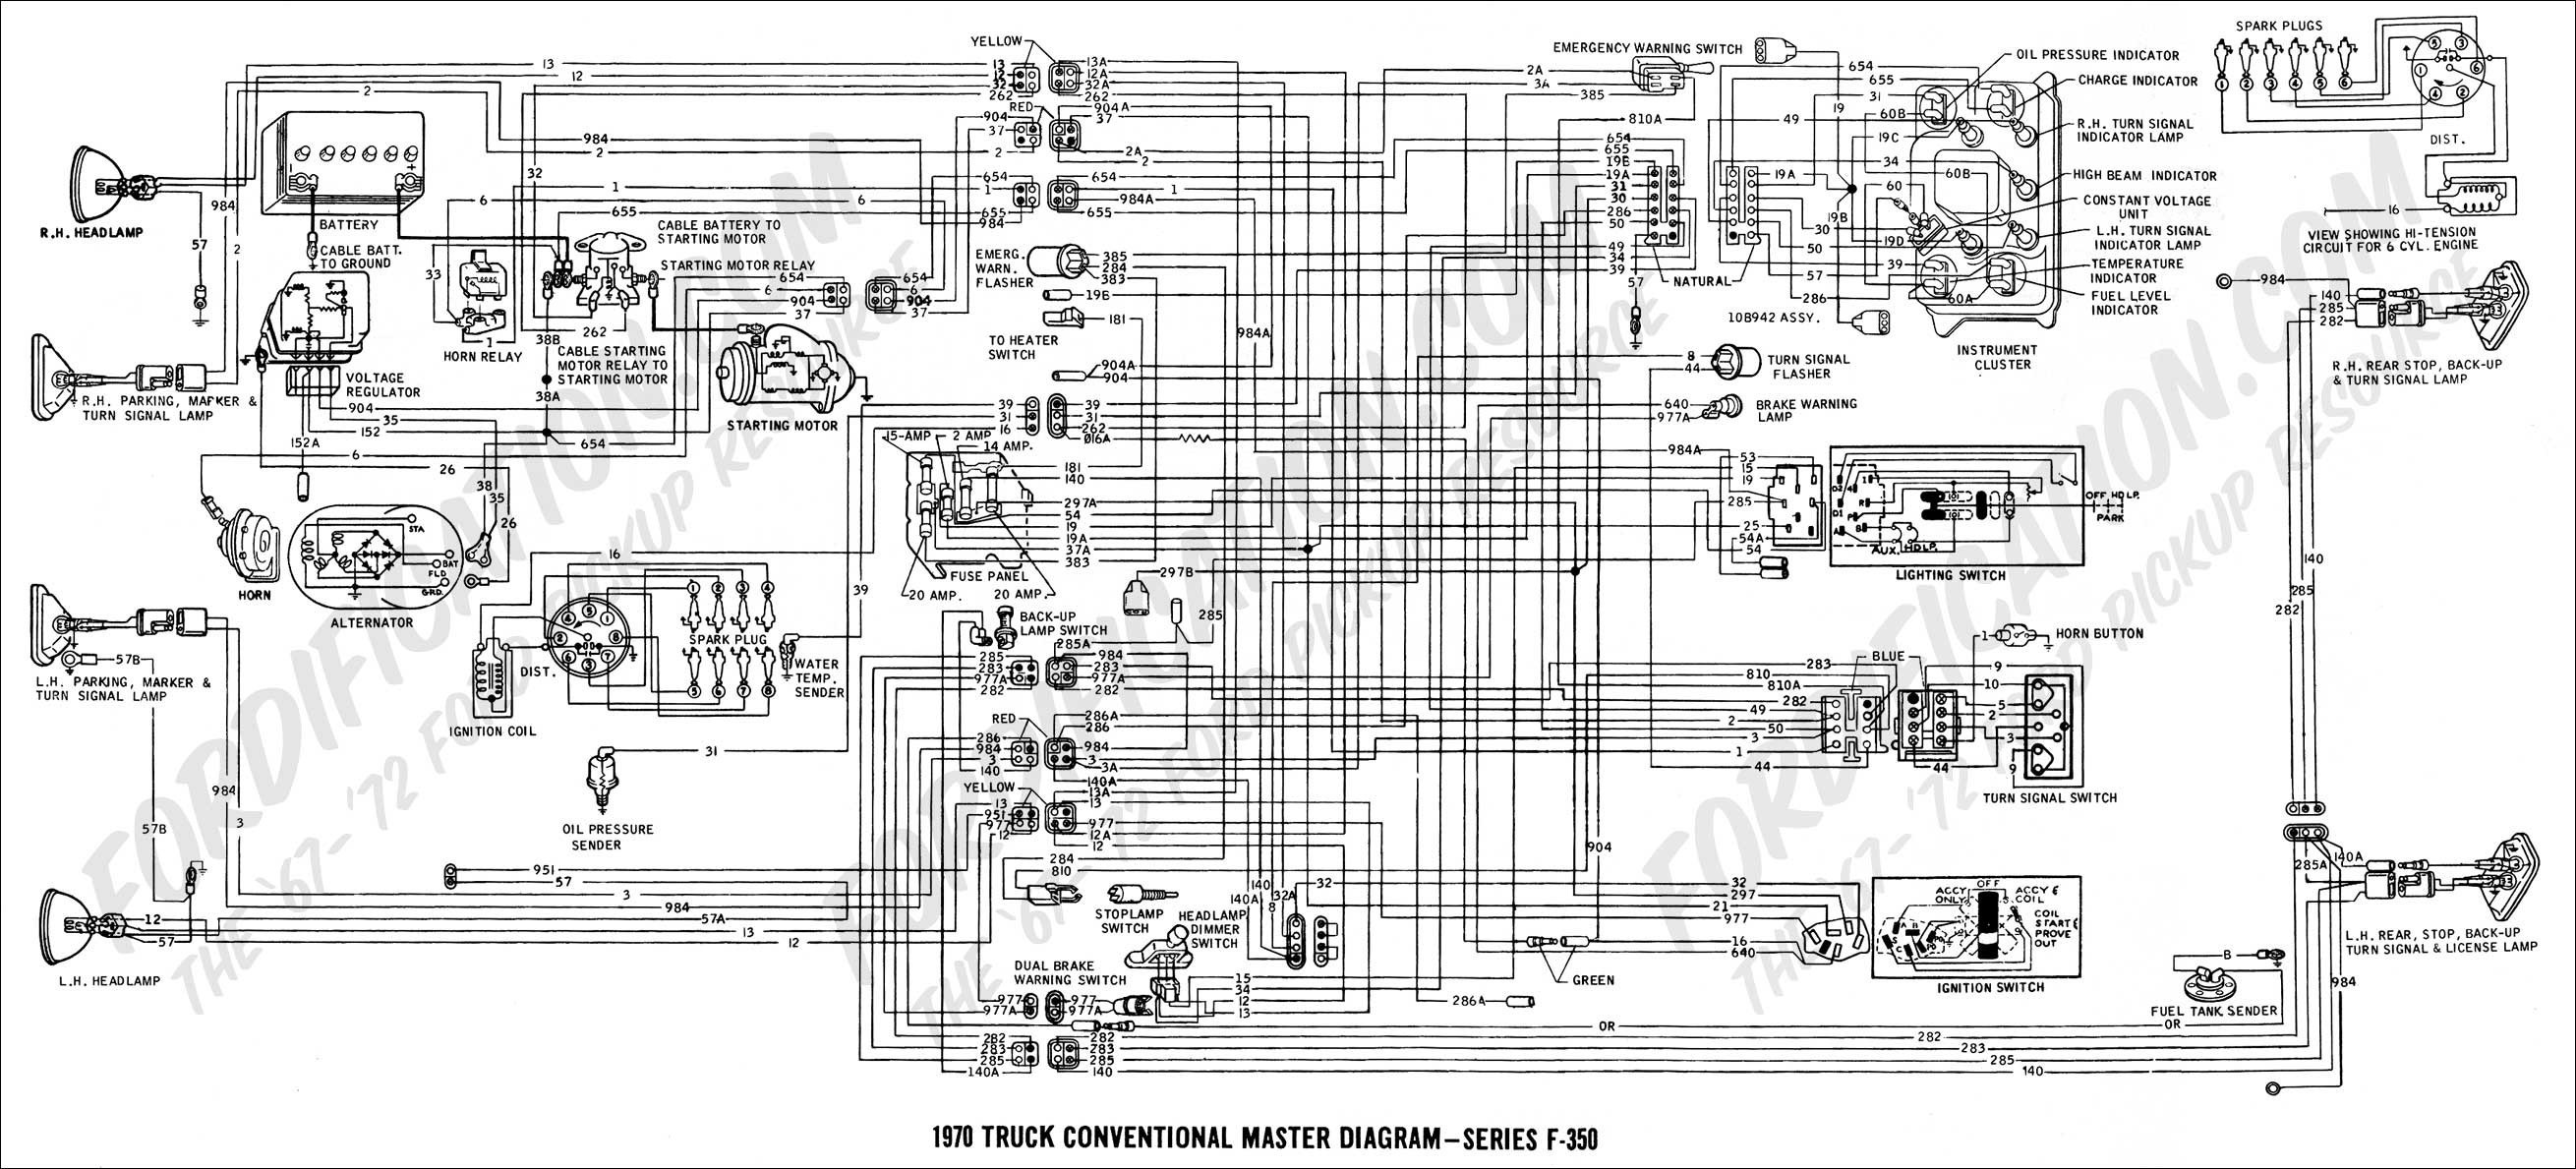 Ford Windstar Engine Diagram 2003 ford Escape Engine Diagram Of Ford  Windstar Engine Diagram Th Q